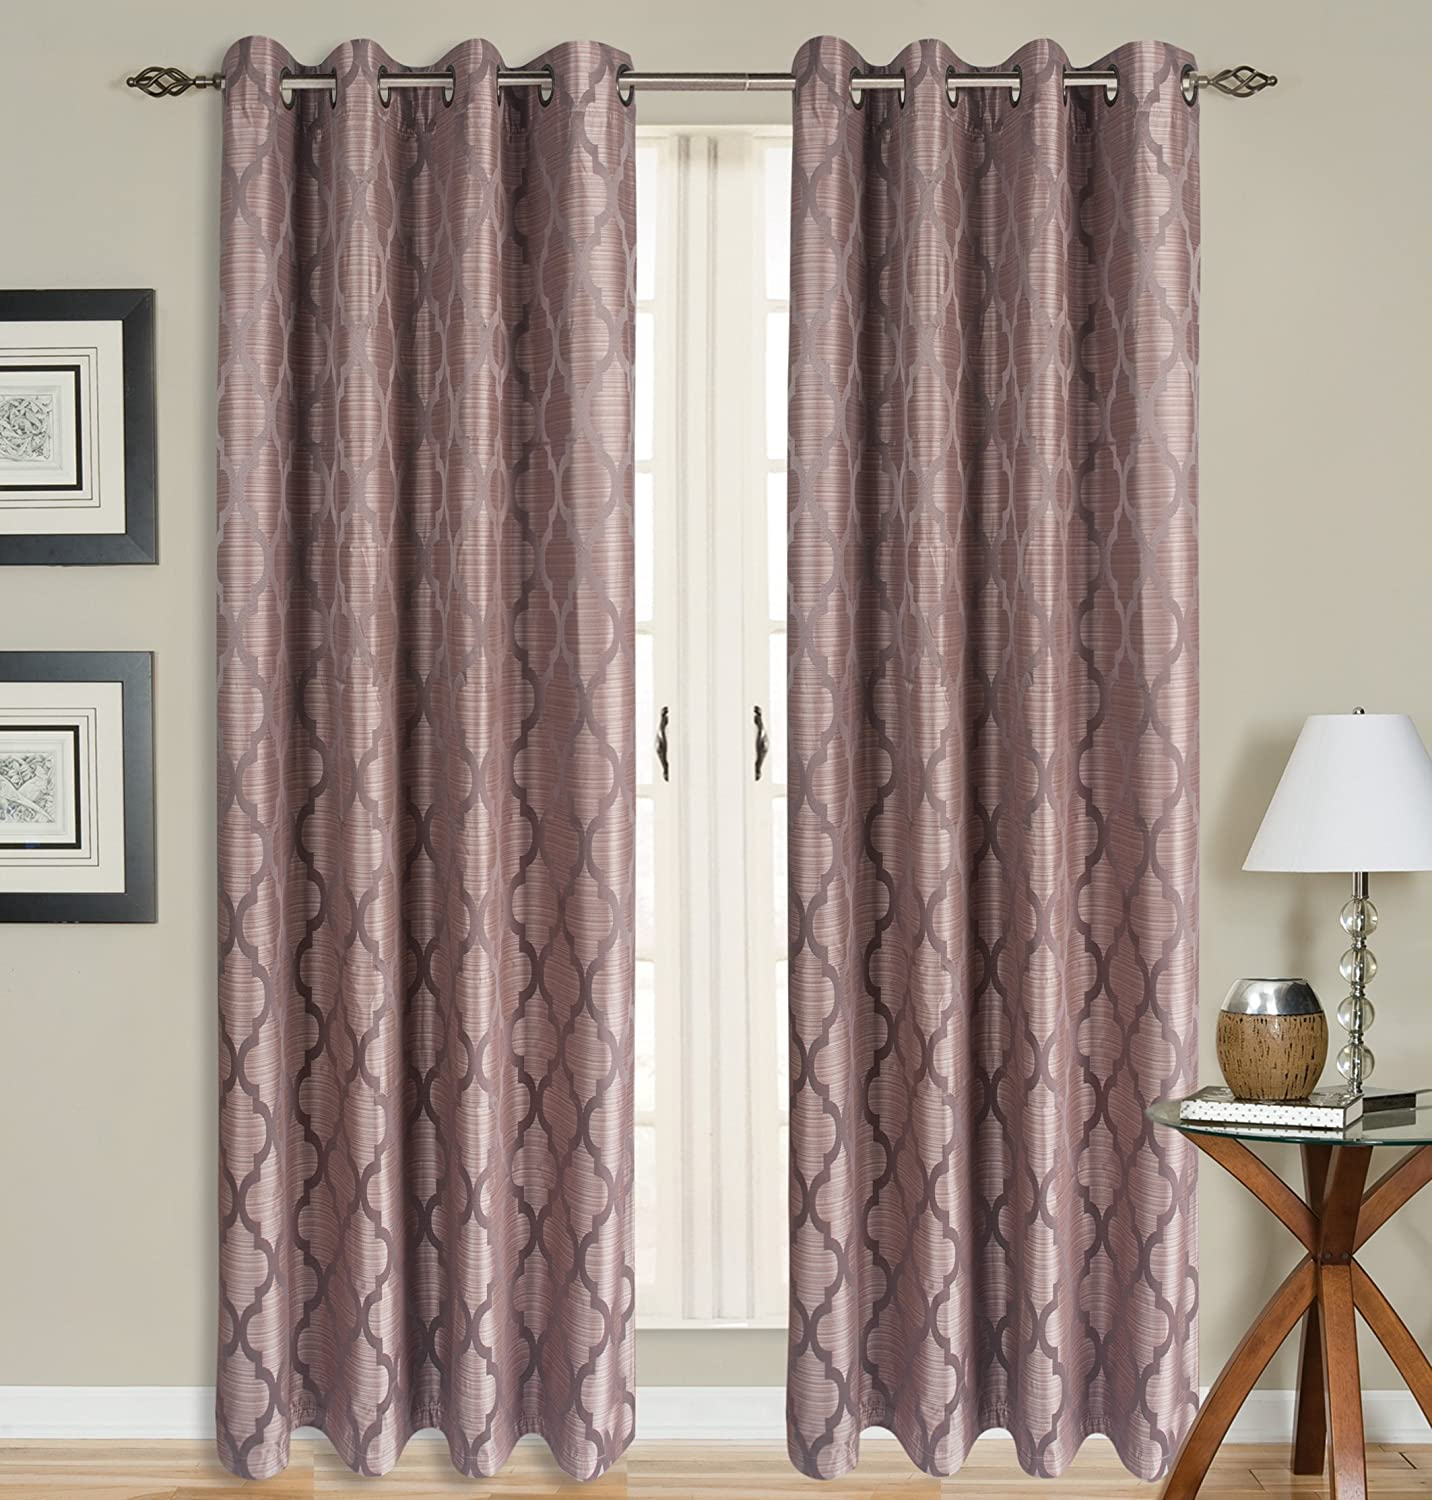 All American Collection New 2 Panel Curtain Set Moroccan Trellis Woven Blackout with 8 Grommets Brown